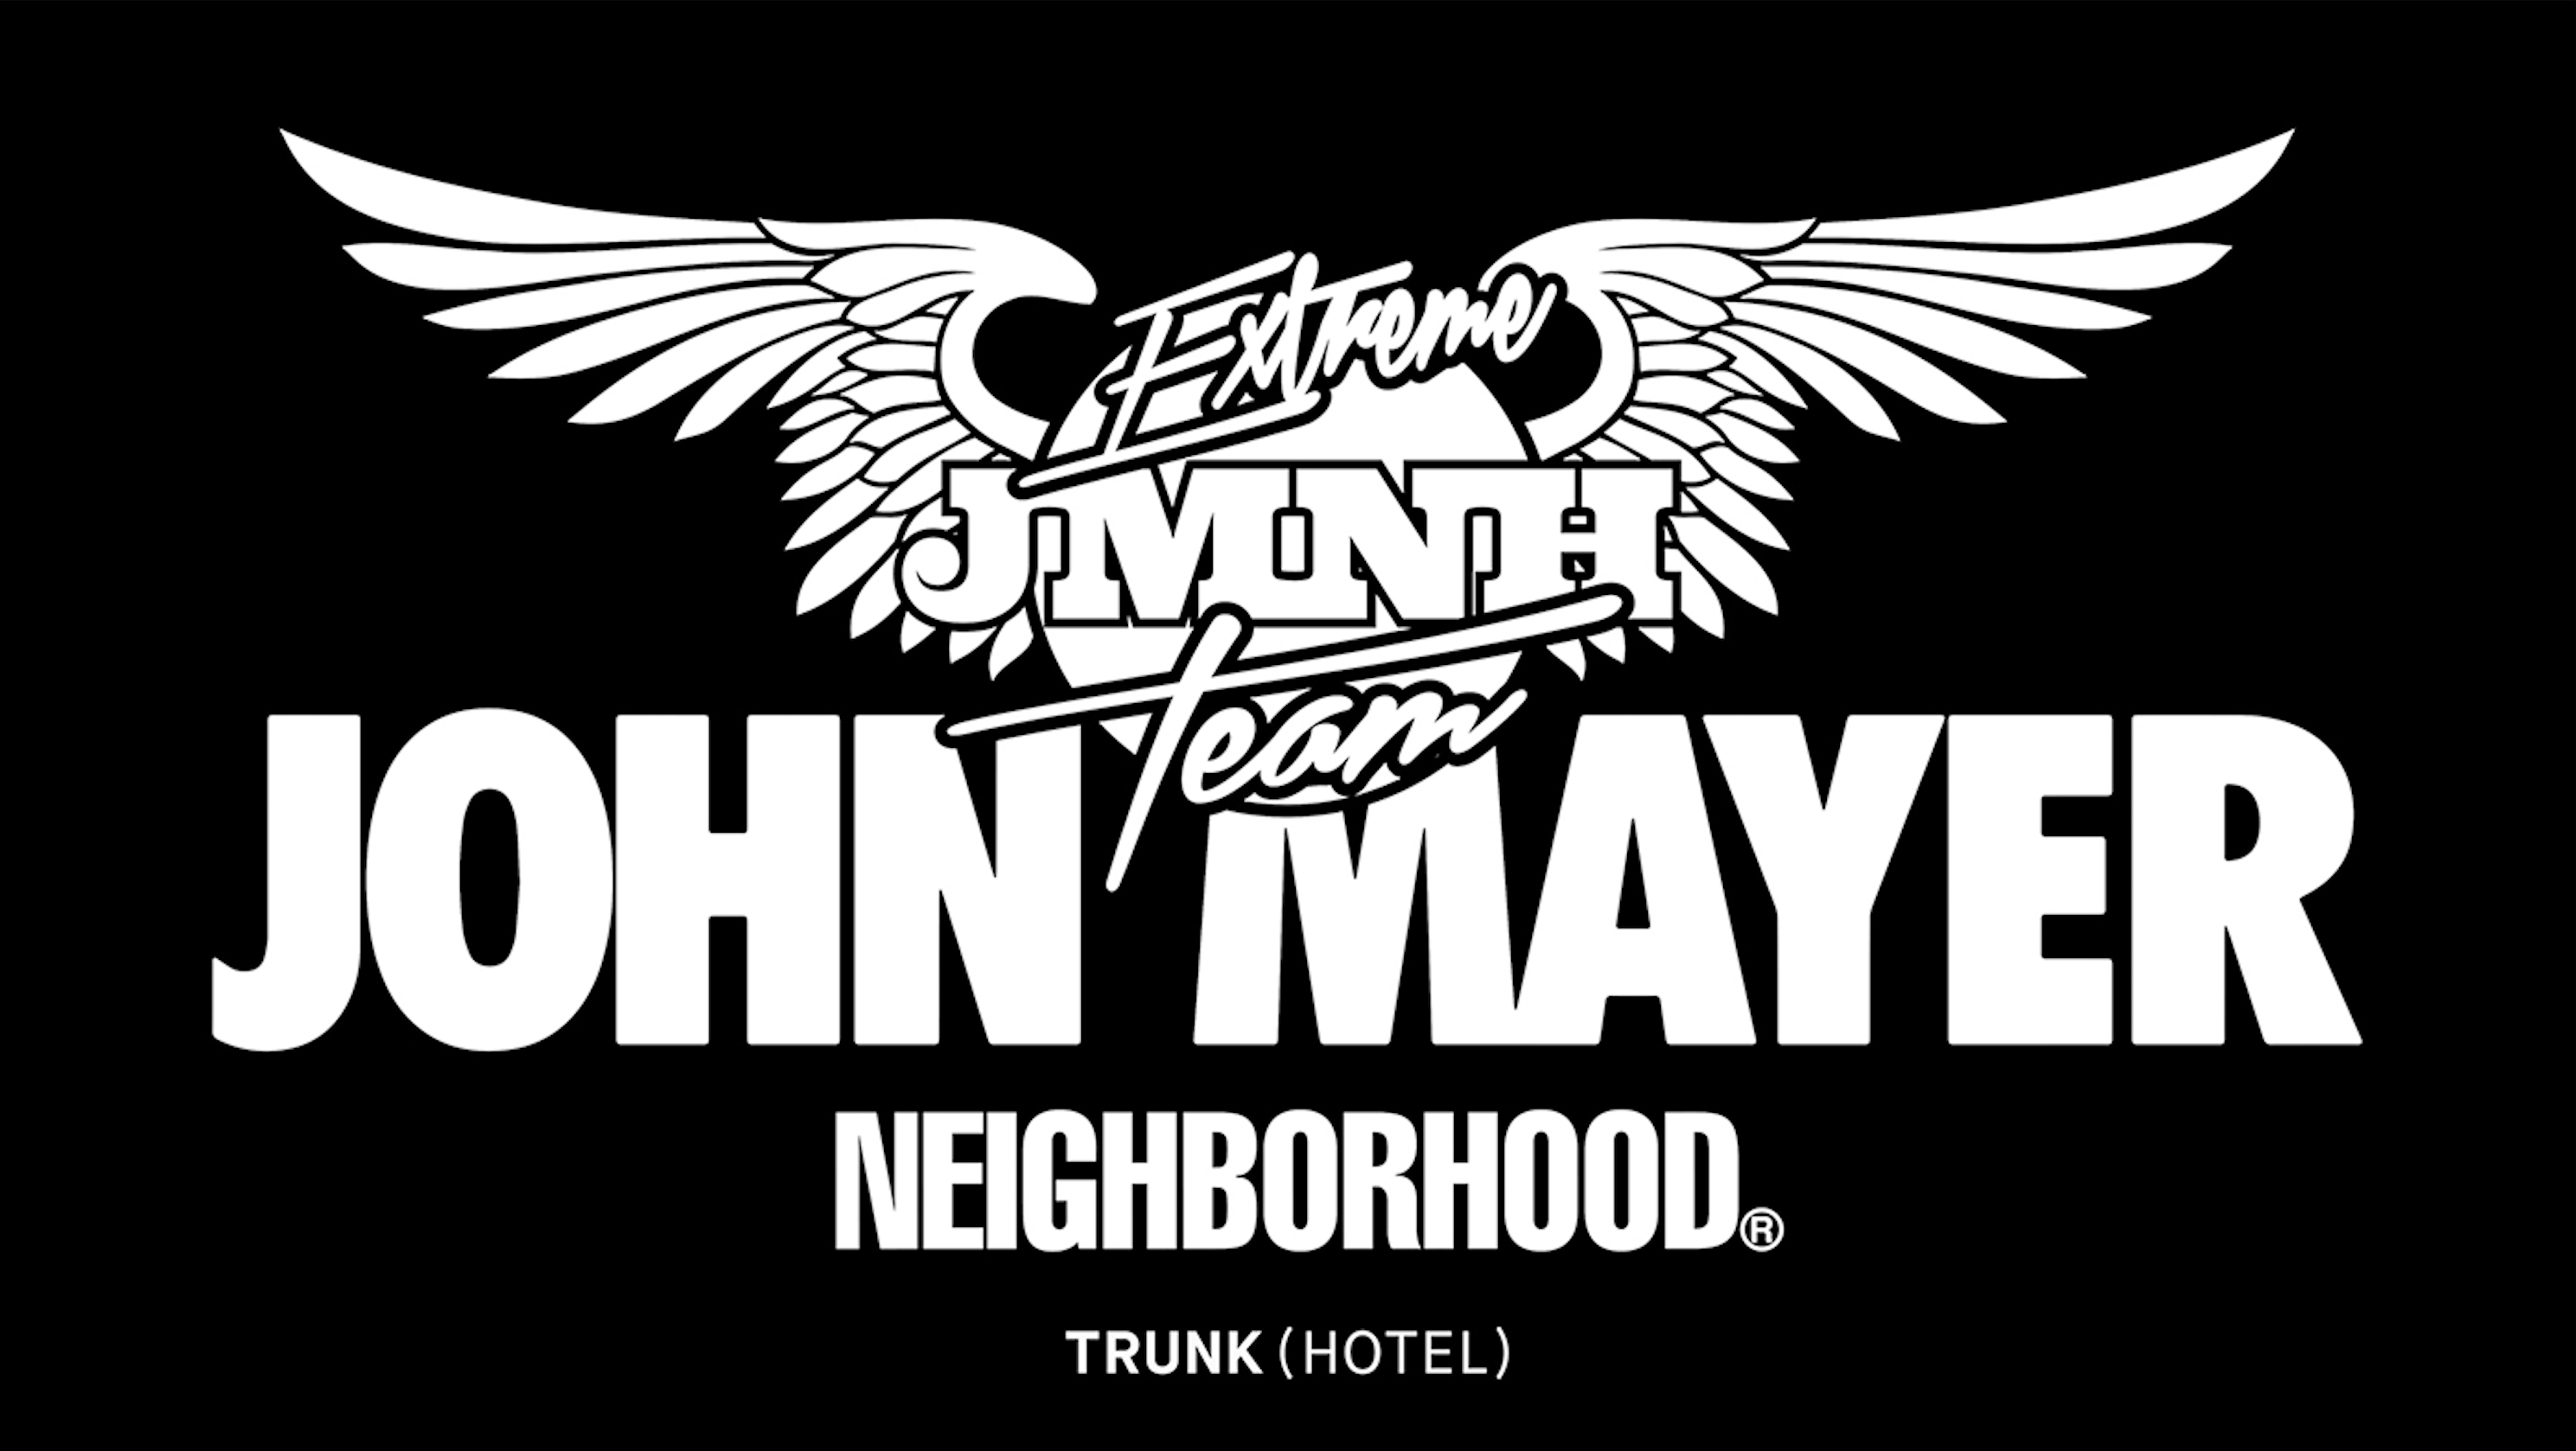 NEIGHBORHOOD Presents JOHN MAYER × NEIGHBORHOOD